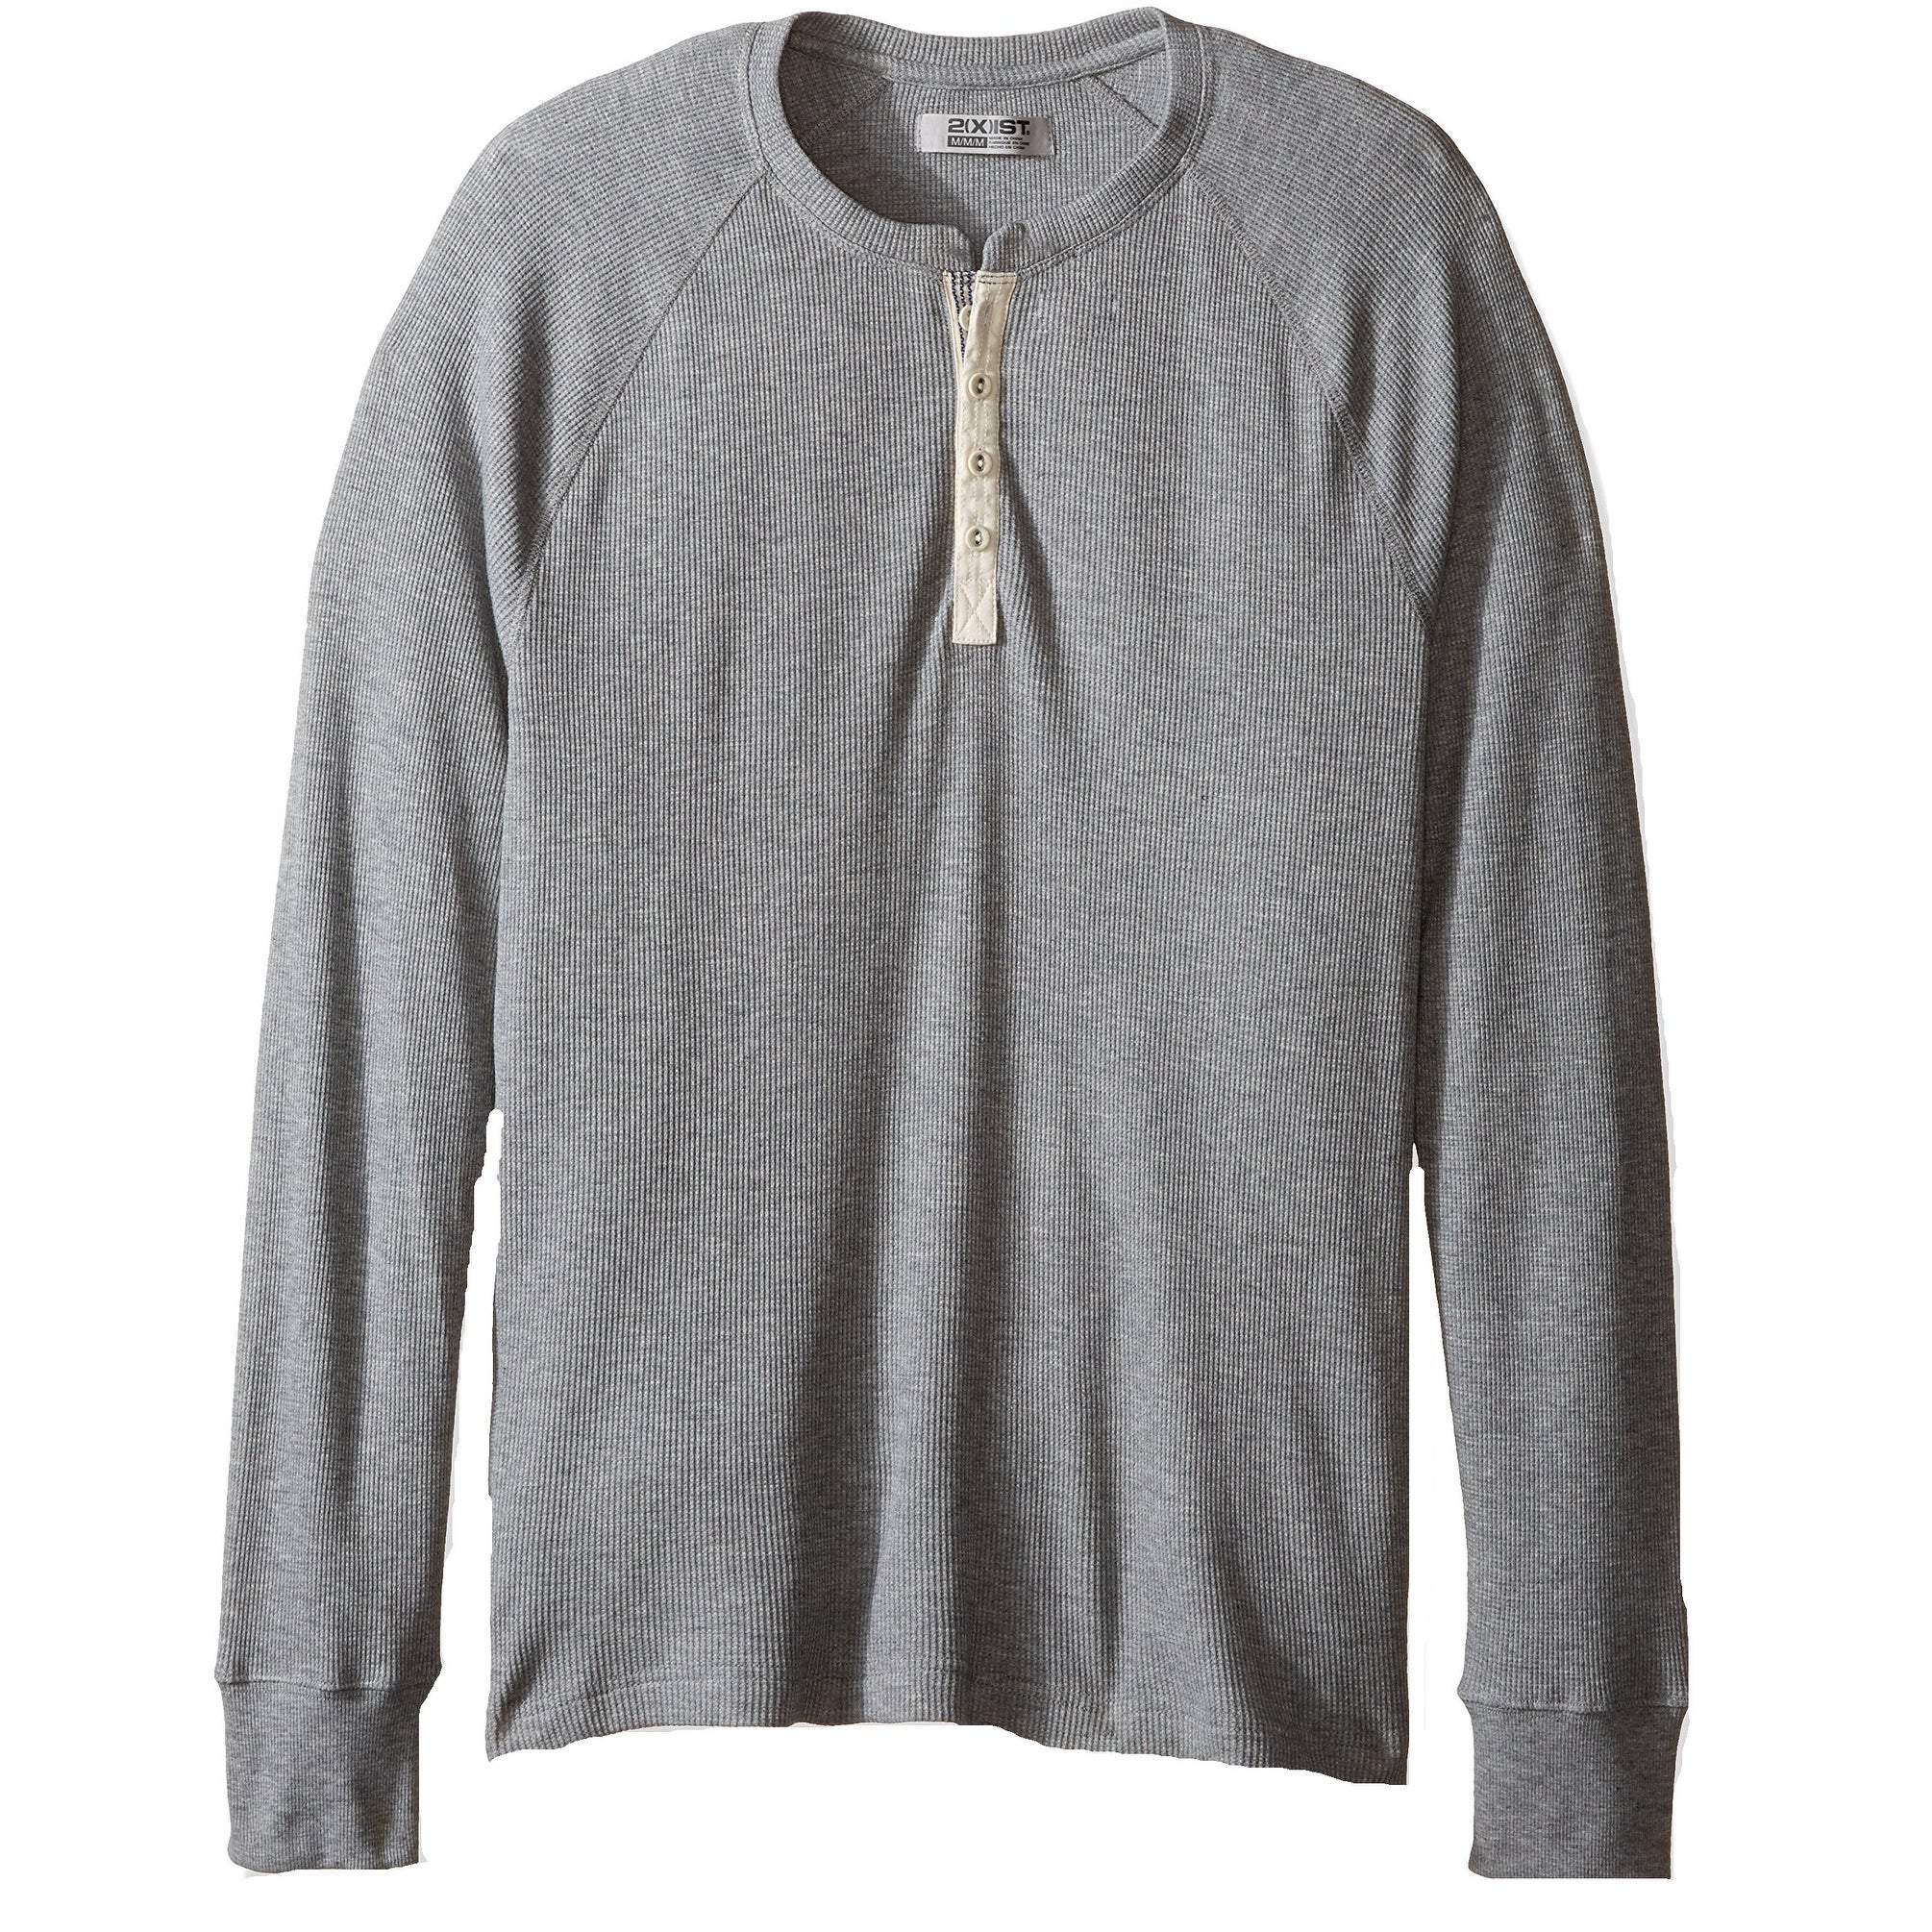 cec611ec Shop 2xist NEW Gray Mens Size Medium M Waffle-Knit Thermal Henley Shirt -  Free Shipping On Orders Over $45 - Overstock - 19549726